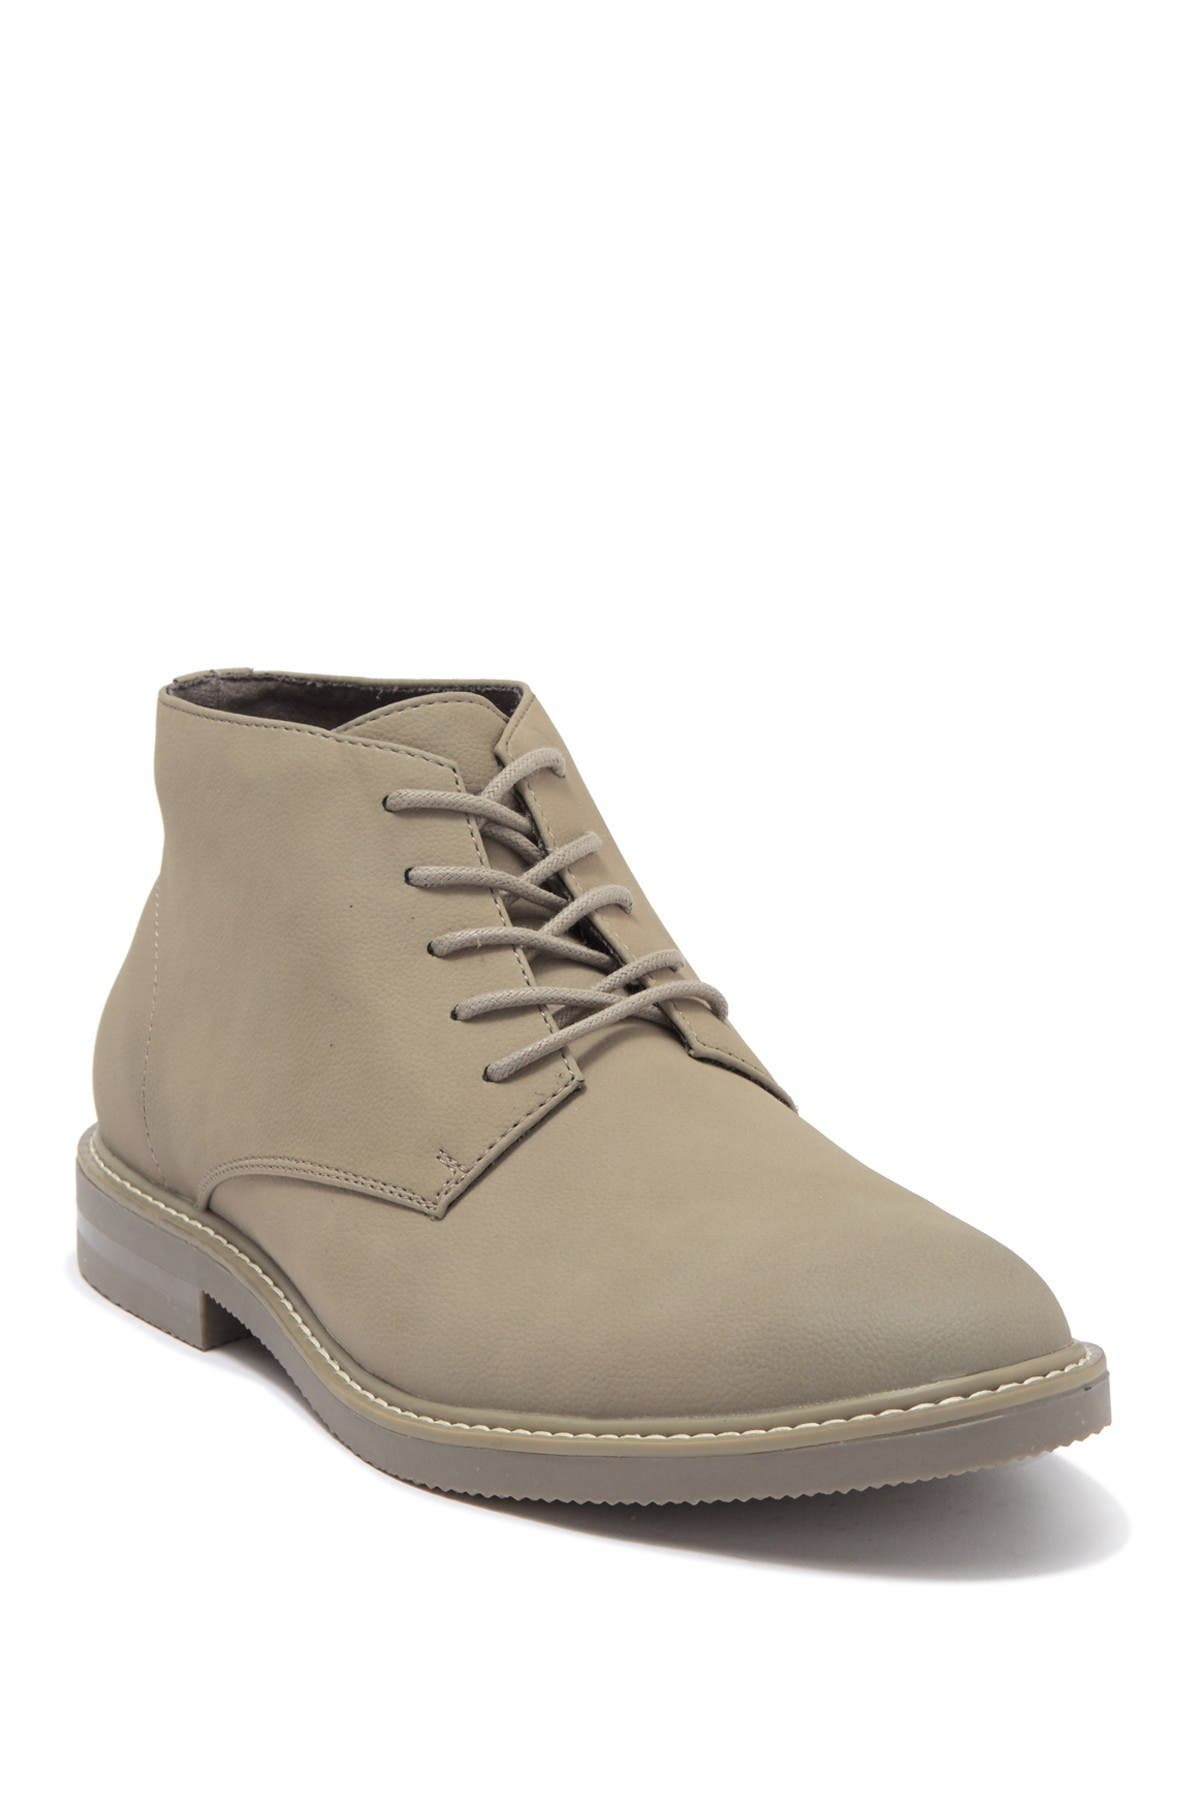 Image of Unlisted, A Kenneth Cole Production Peyton Chukka Boot